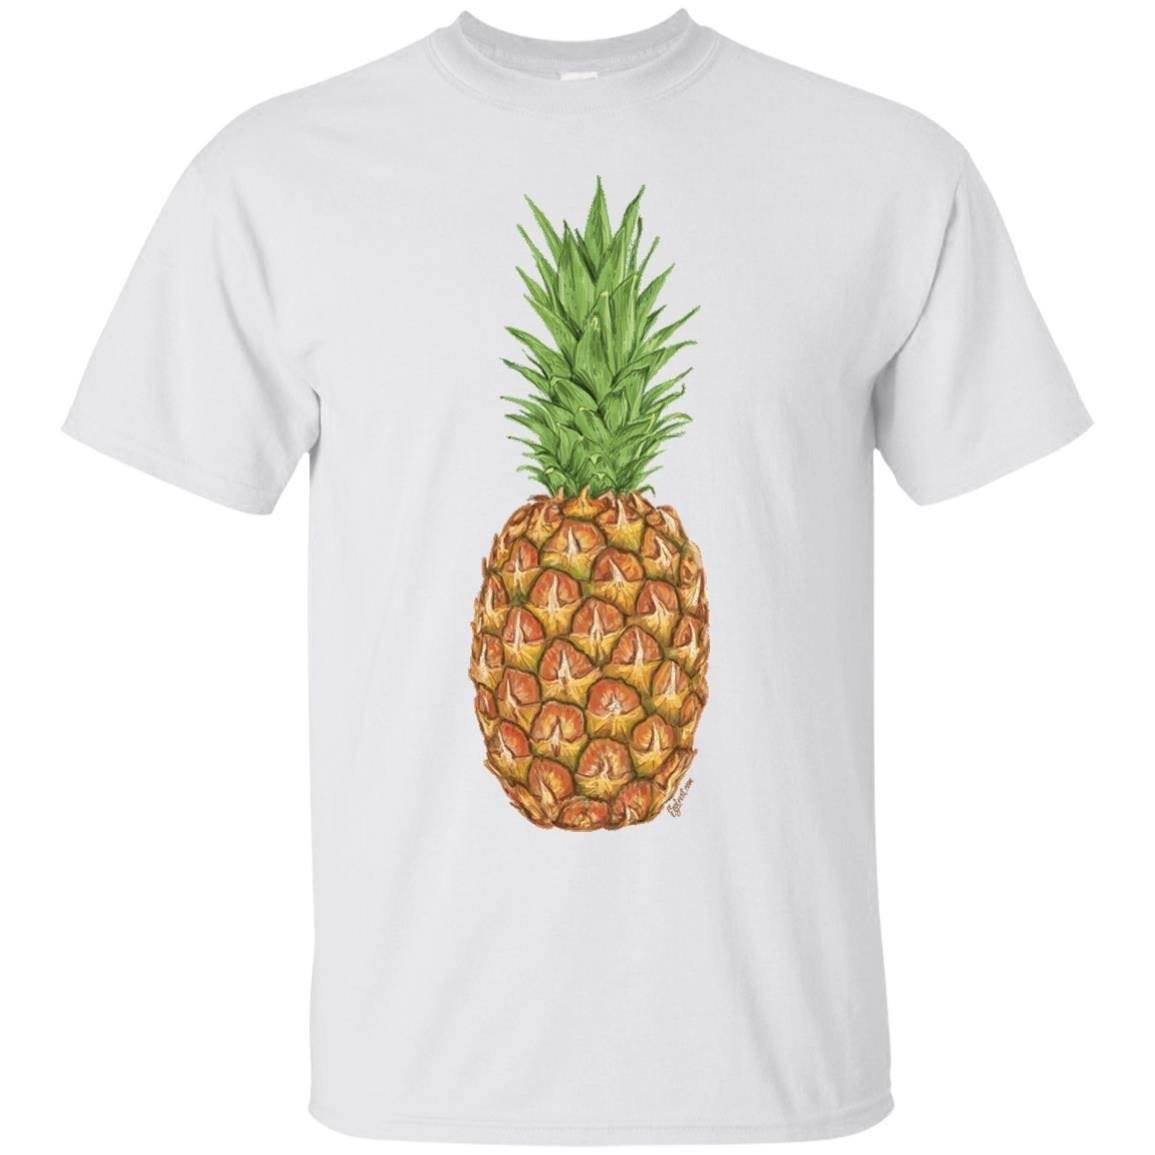 Egoteest Pineapple T shirt – Pineapple Shirt – Summer Tee – T-Shirt